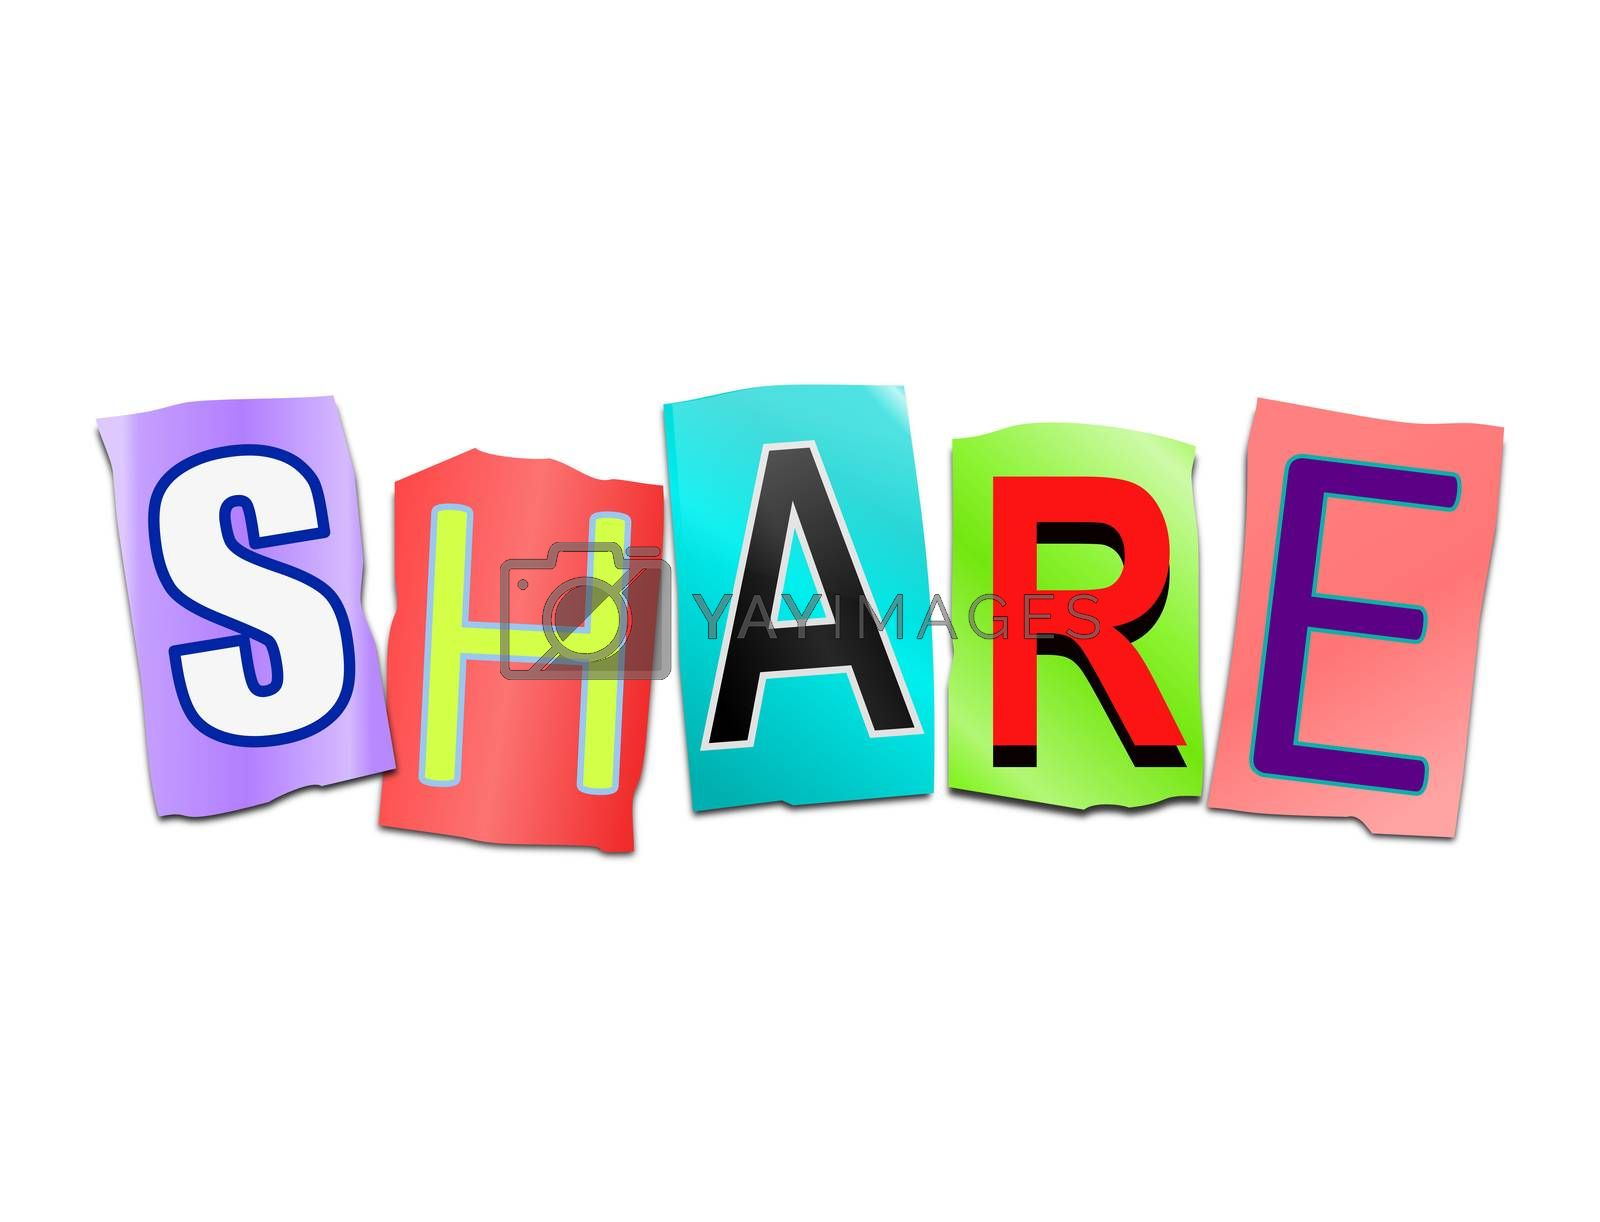 Illustration depicting a set of cut out printed letters arranged to form the word share.